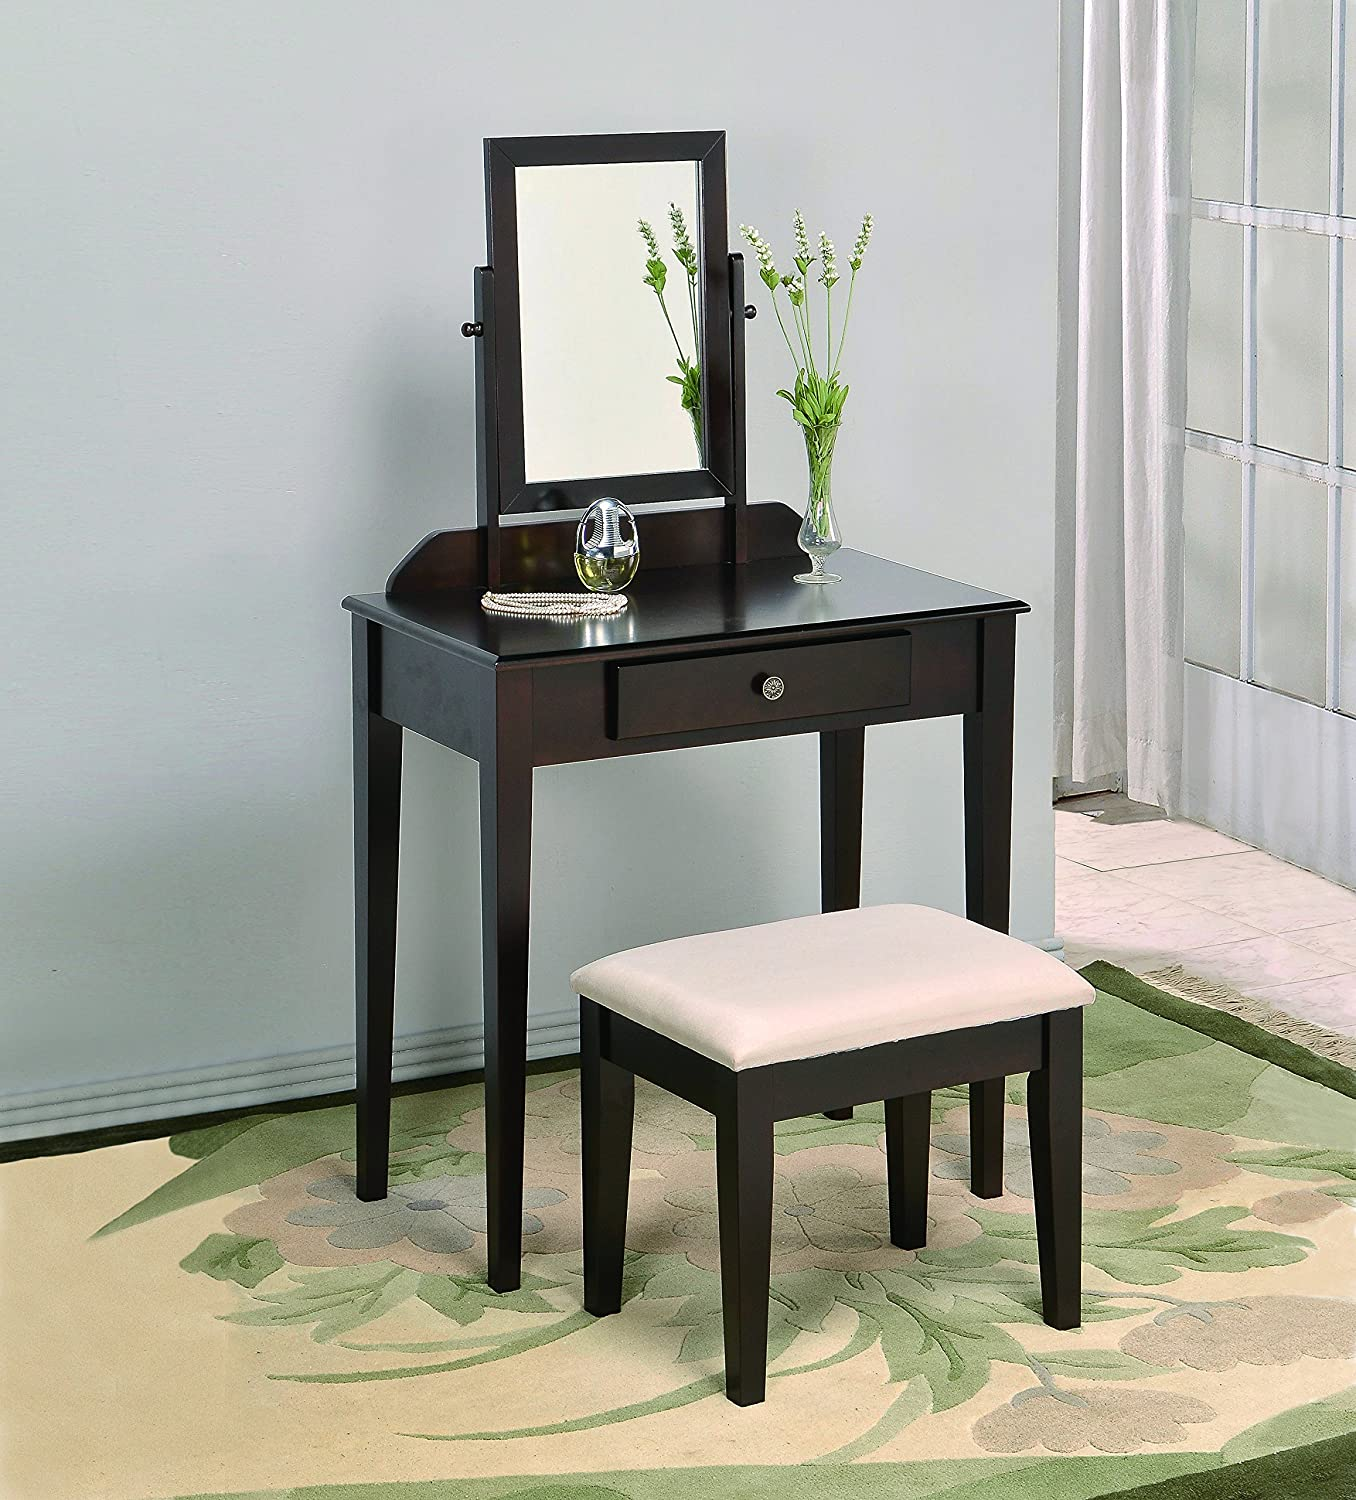 Amazoncom Crown Mark Iris Vanity TableStool Espresso Finish - Vanity table